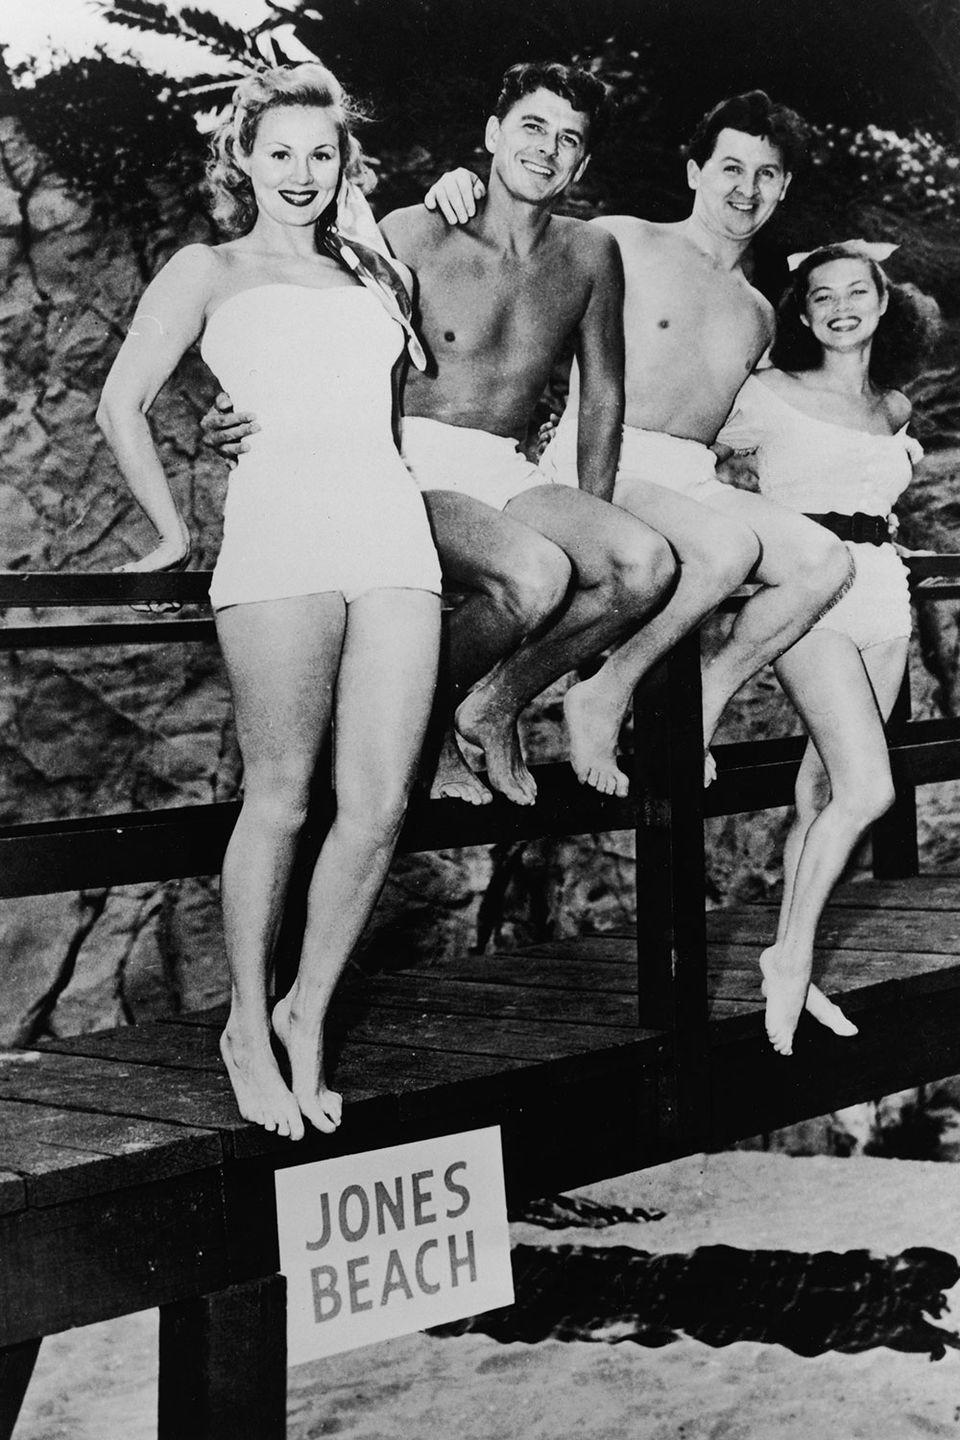 <p>Ronald Reagan sits on the boardwalk with his co-stars in a publicity photo for <em>The Girl From Jones Beach. </em></p>